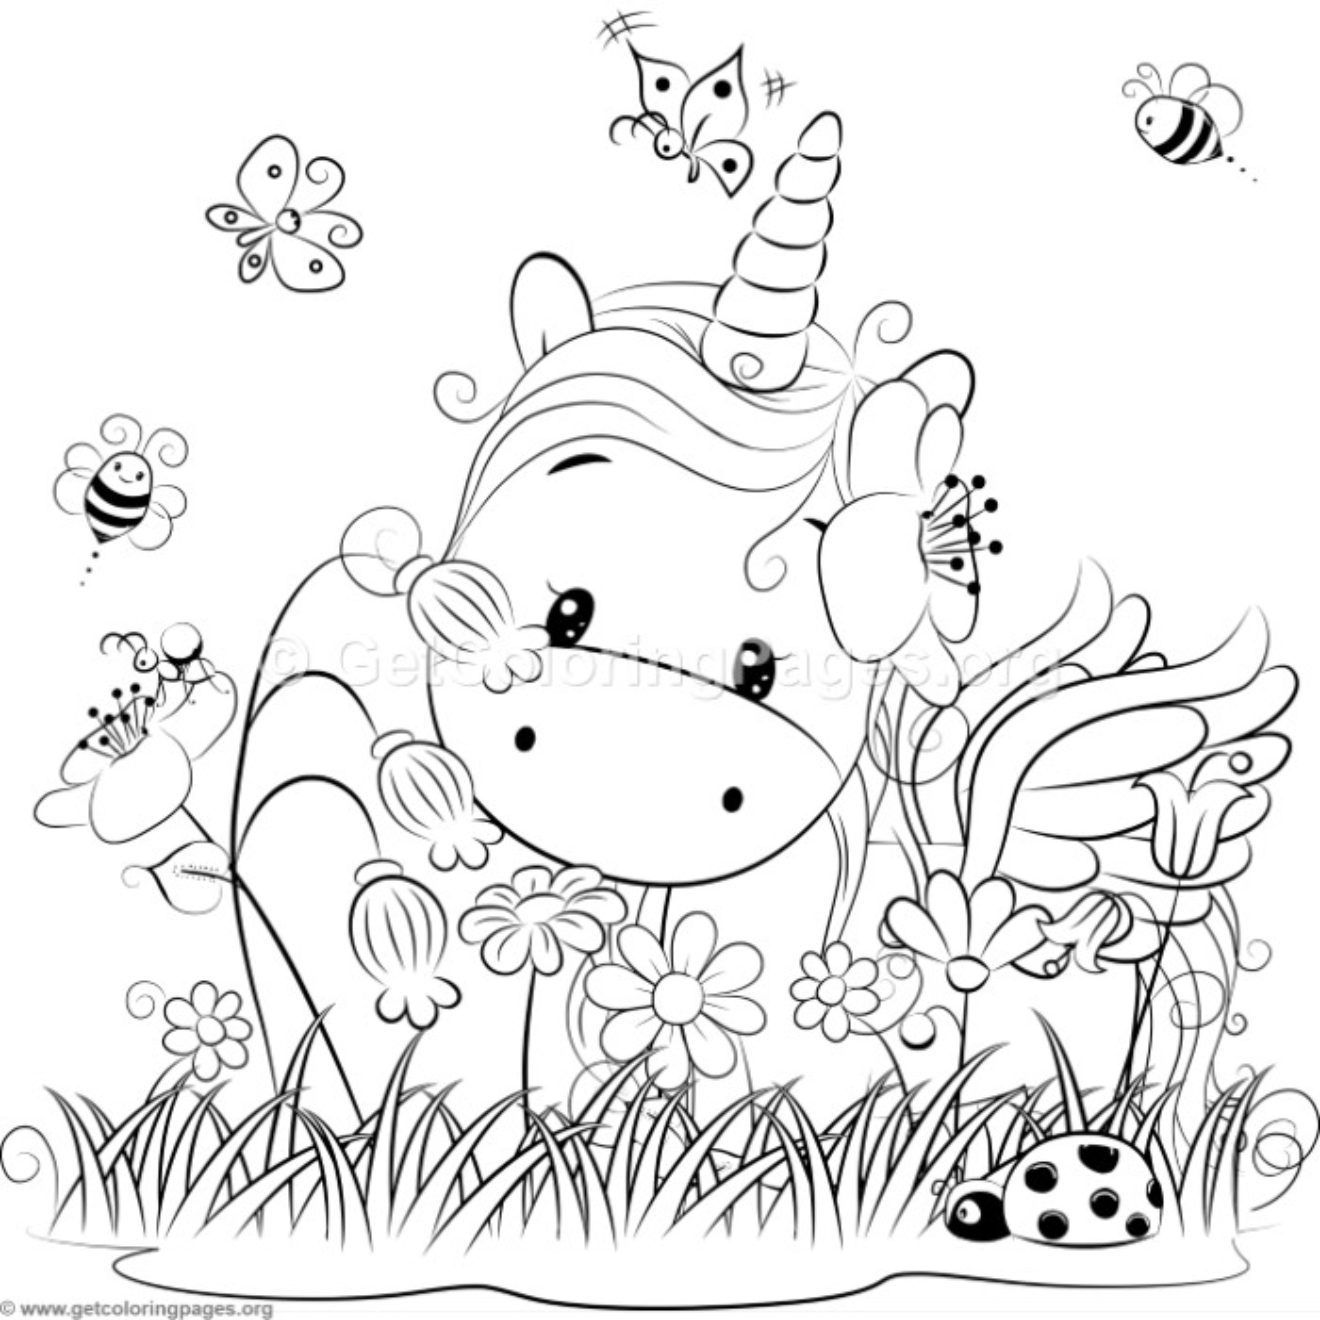 Get Coloring Pages Unicorn Coloring Pages Cute Coloring Pages Coloring Pages